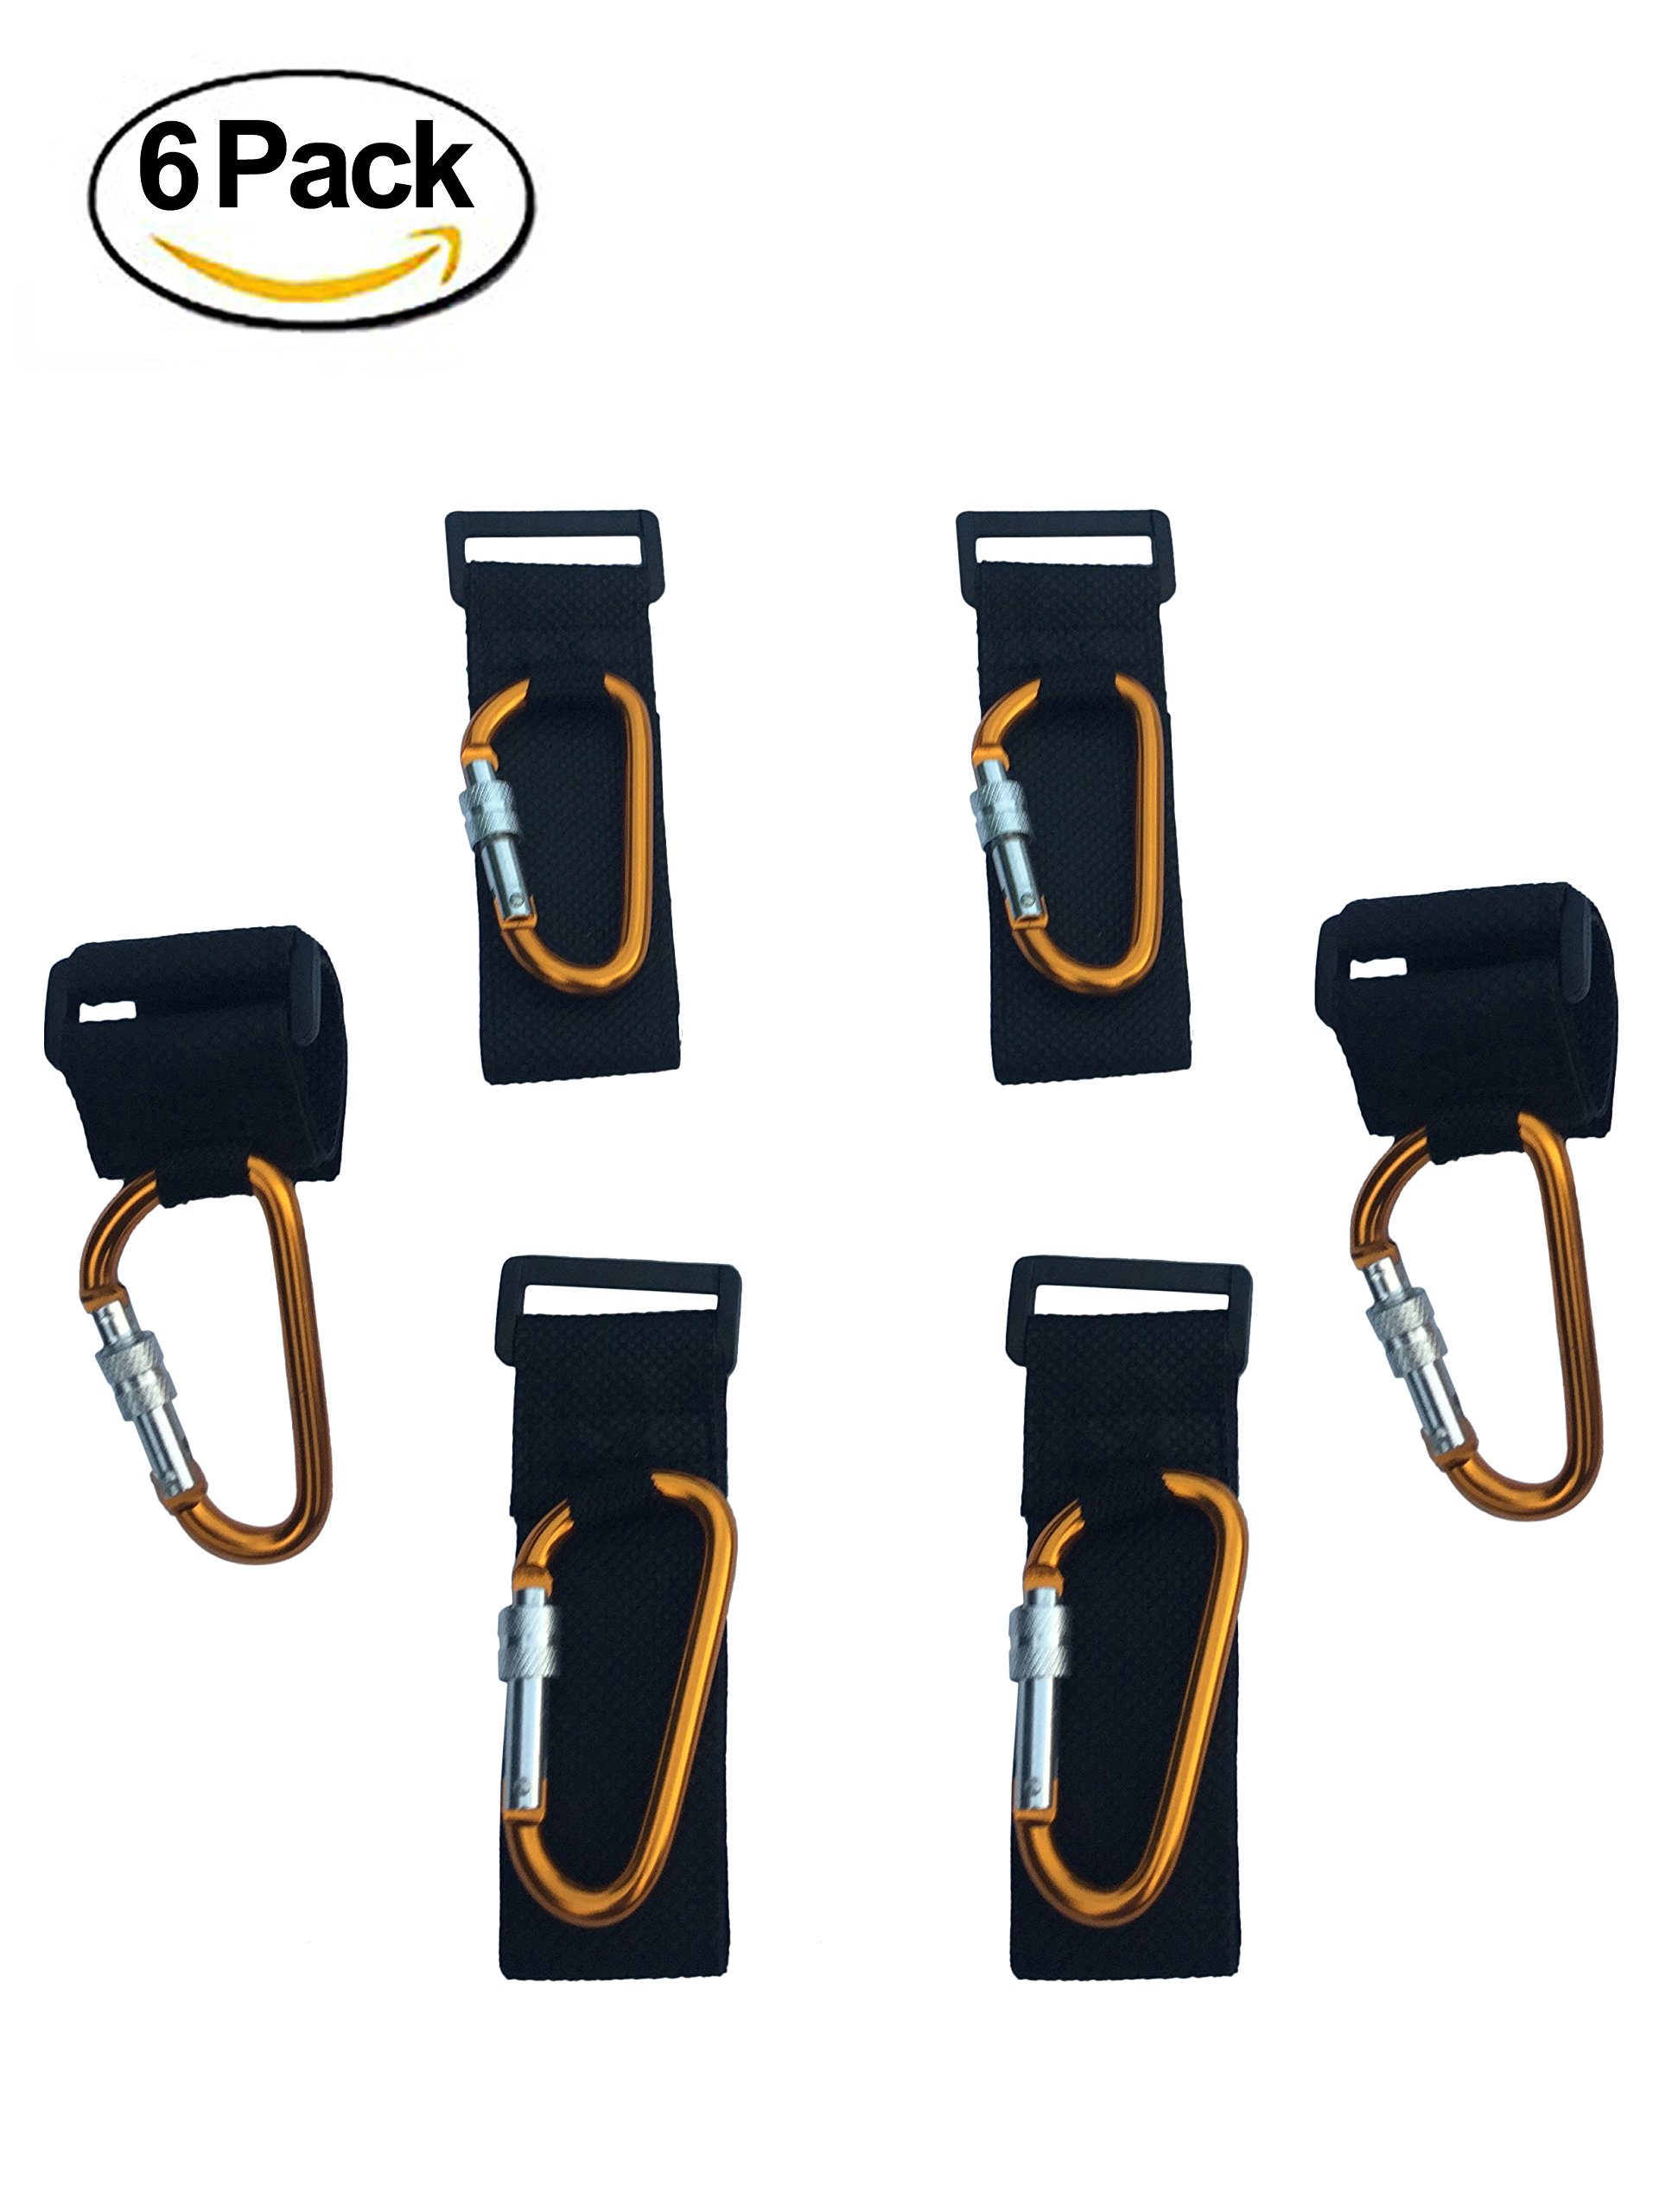 ALTINIFY Gold Stroller Hook Clip with Lock – 6 Pack of Multi Purpose Hooks - Hanger for Baby Diaper Bags, Groceries, Clothing, Purse – Ideal for Mommy and Dad When Jogging, Walking or Shopping